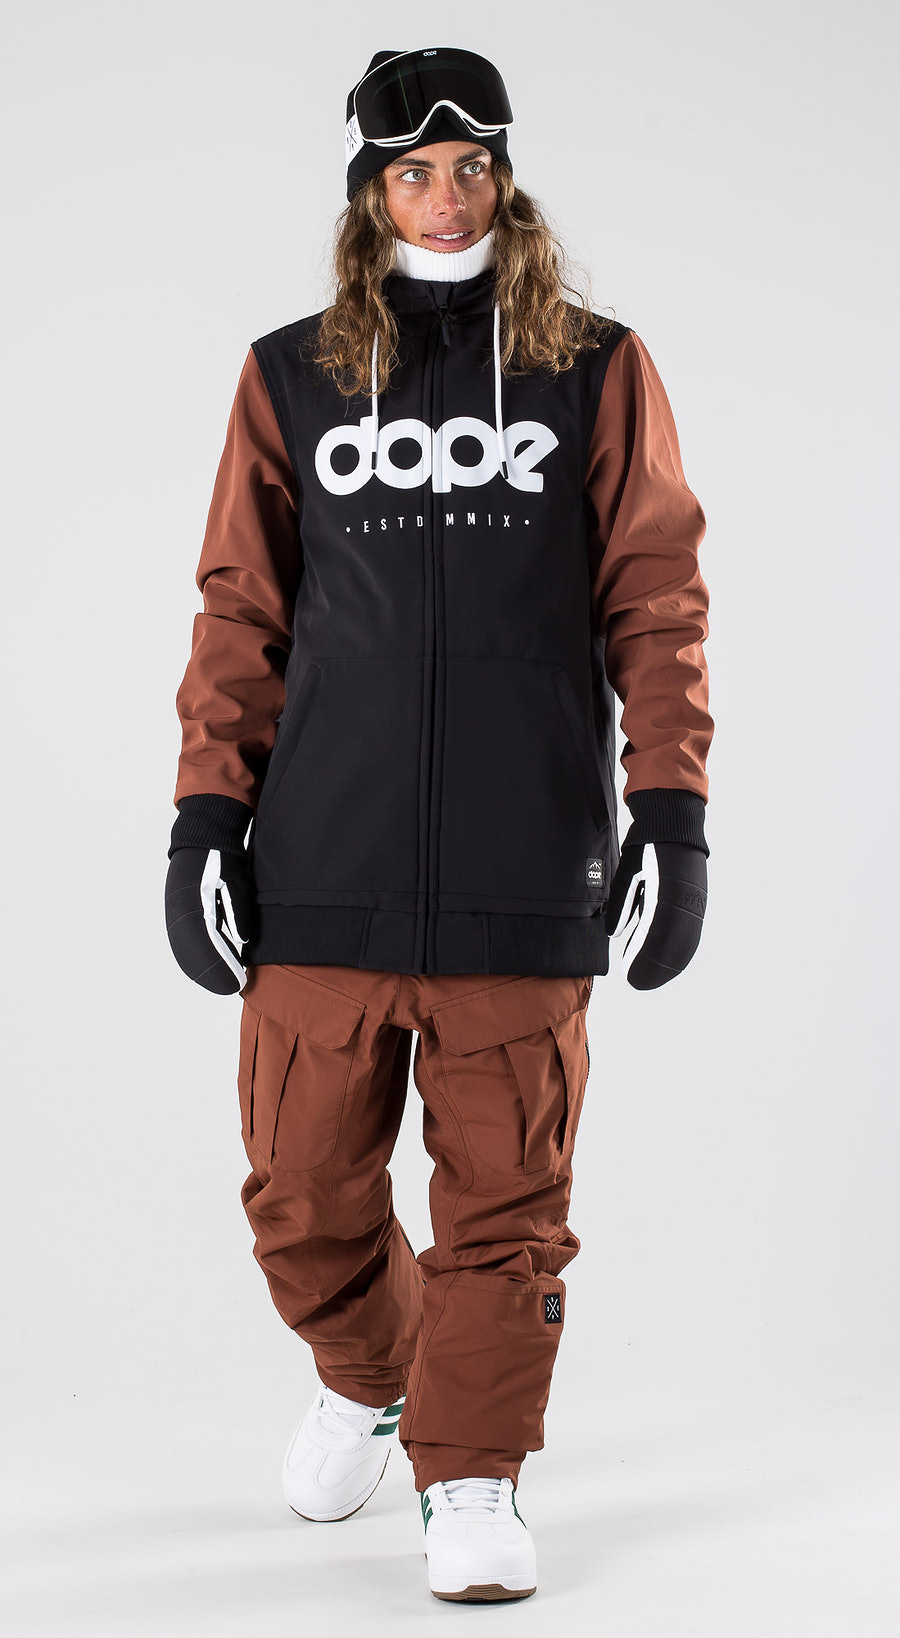 Dope Standard DO Black/Adobe Snowboard clothing Multi